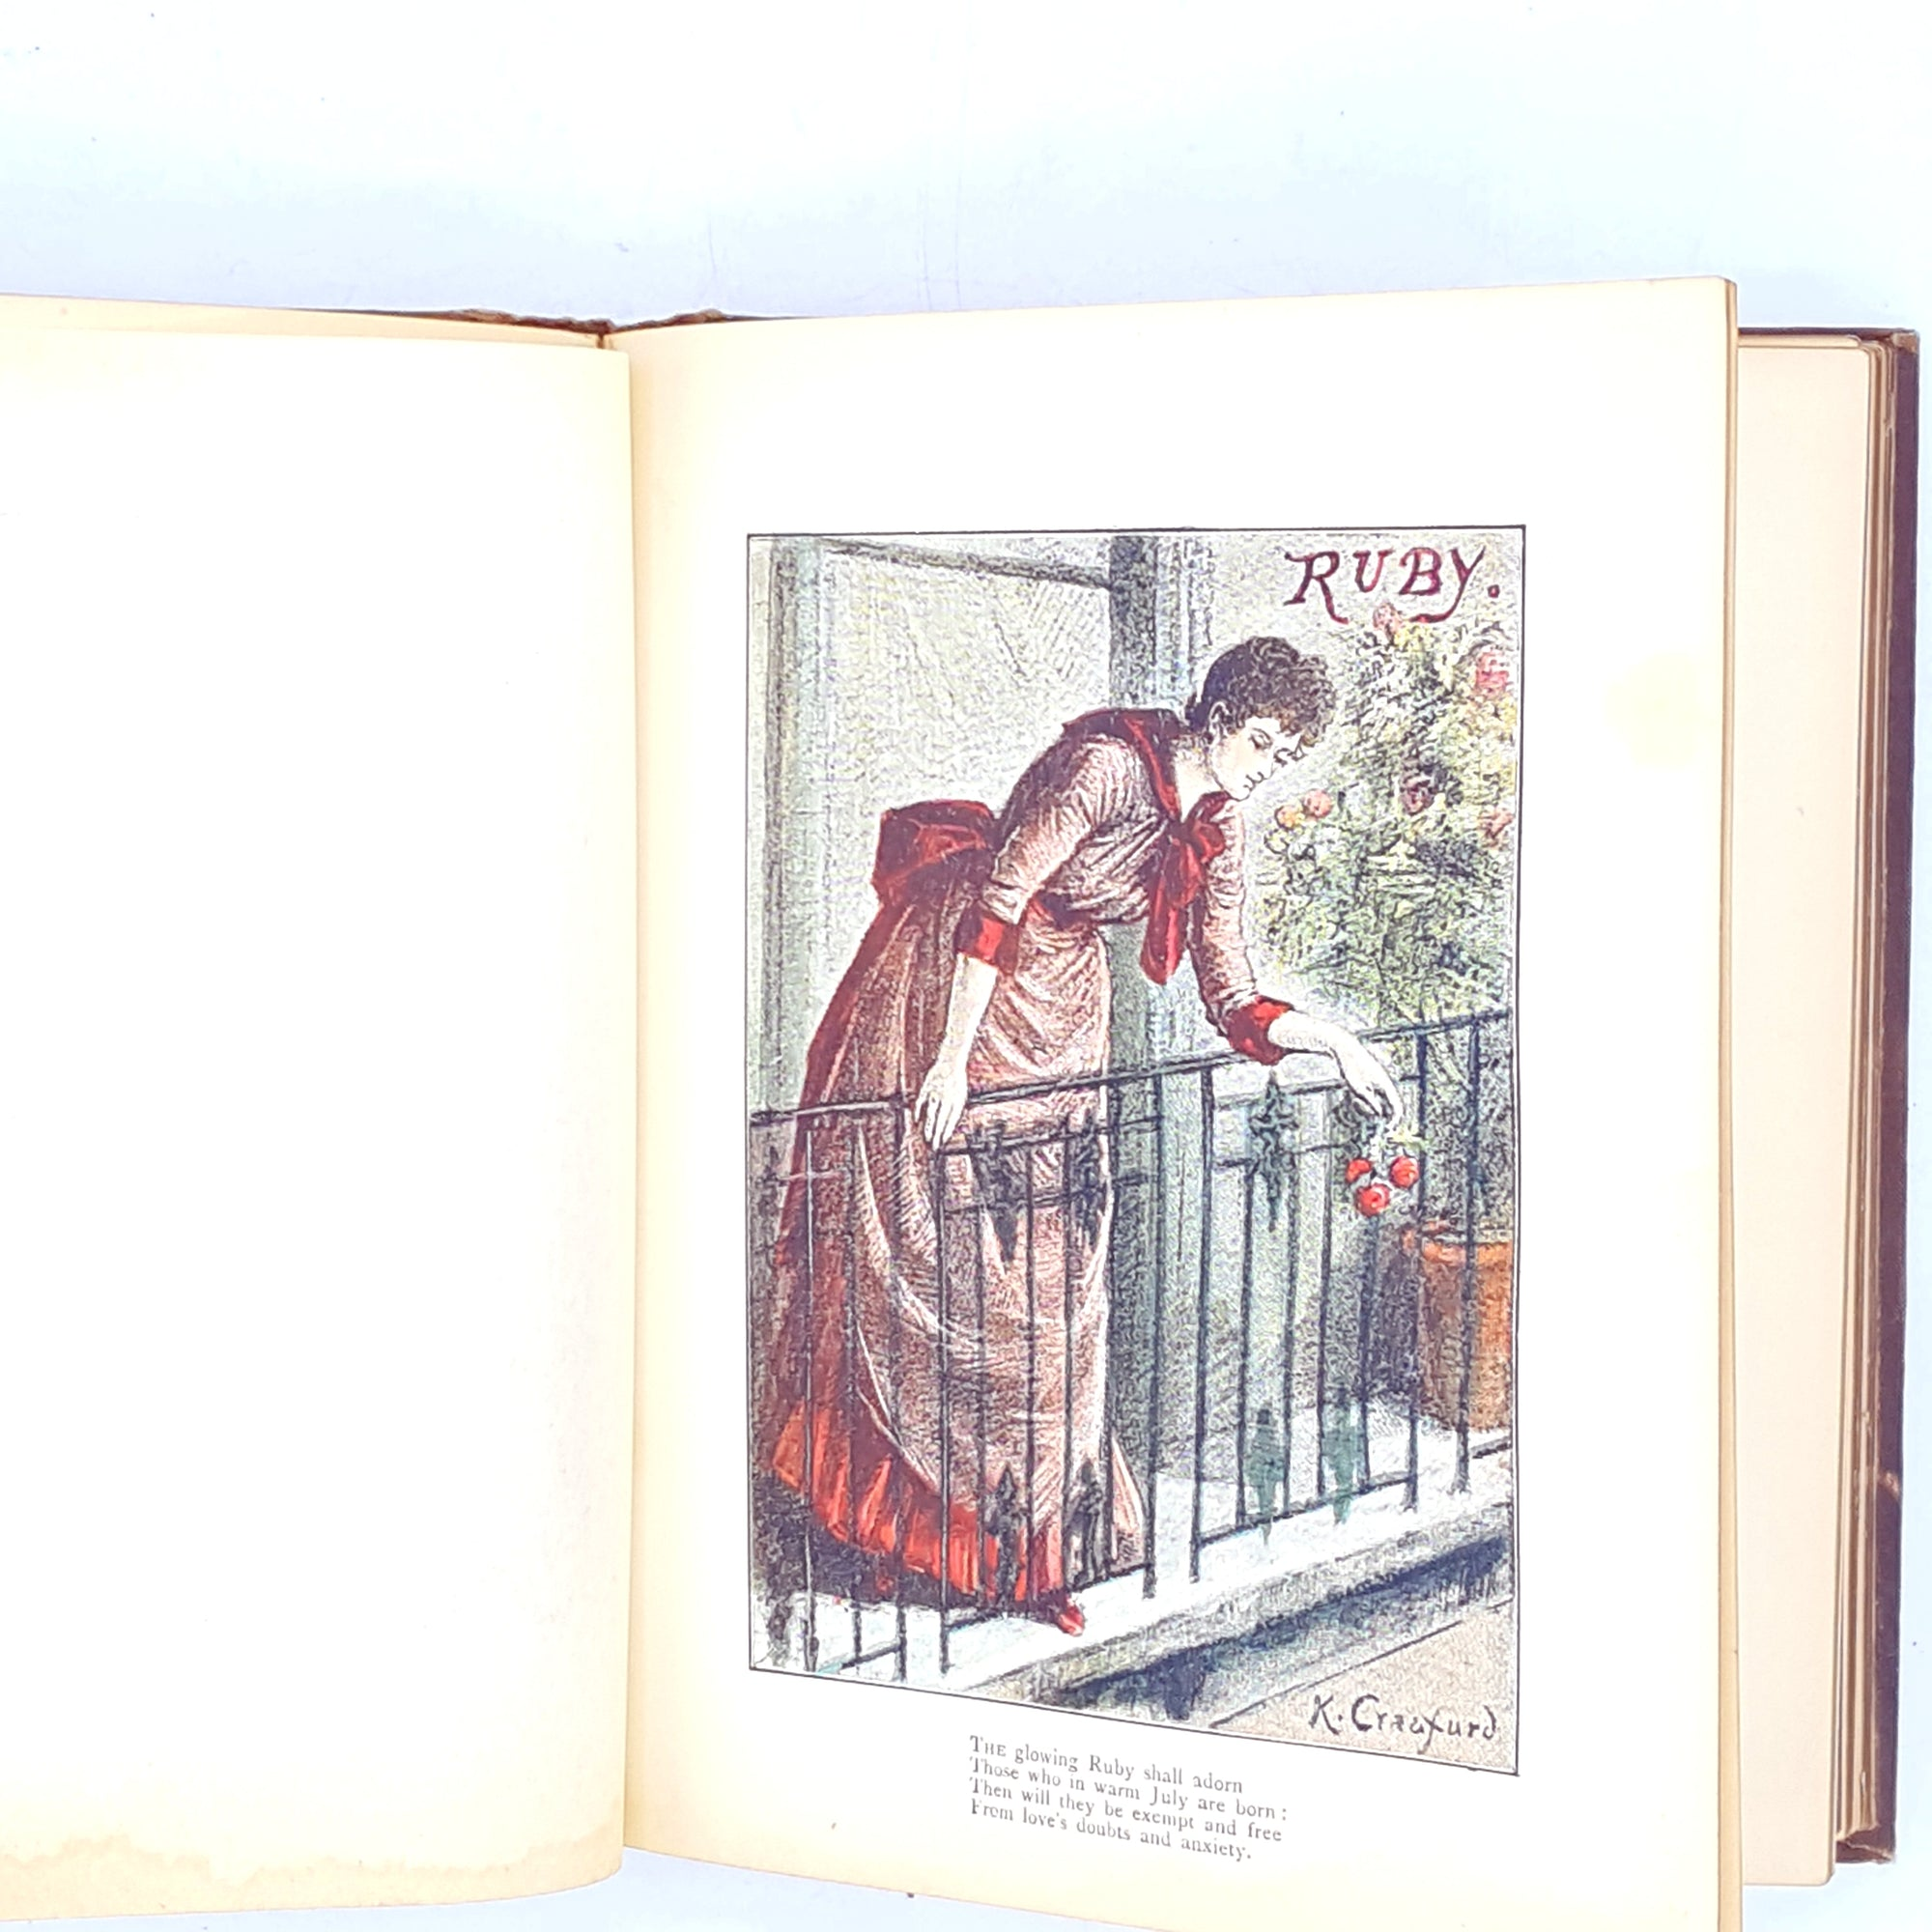 vintage-m-halford-old-1900-thrift-rare-decorative-illustrated-country-house-library-patterned-warne-k-crauford-books-peach-poetry-verses-fortunes-mirror-